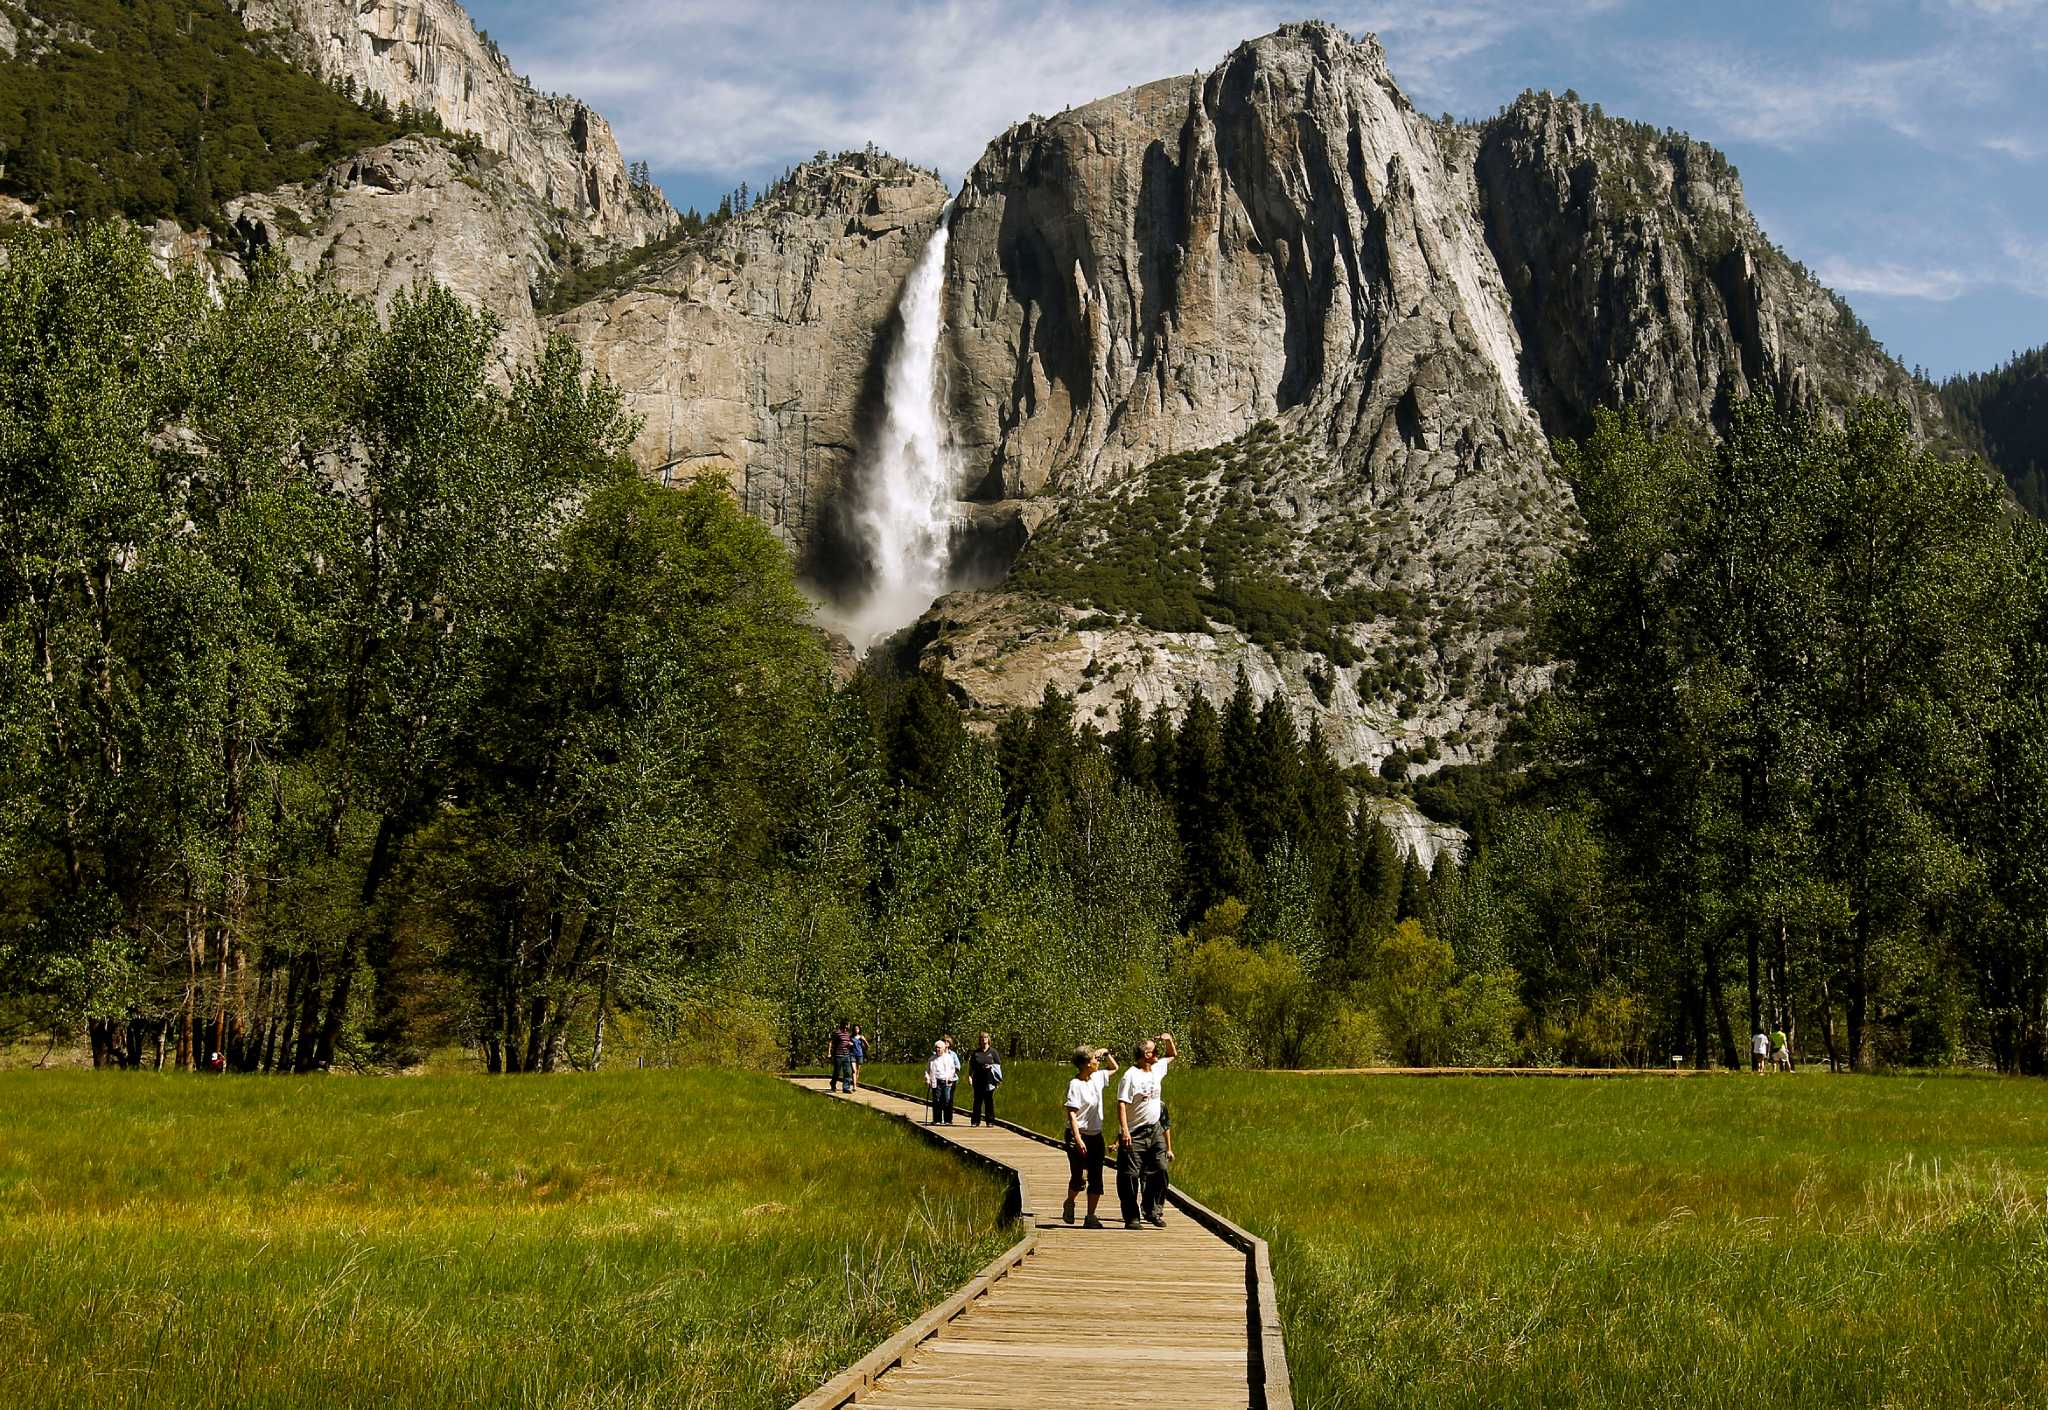 yosemite village personals Personal ads for yosemite valley, ca are a great way to find a life partner, movie date, or a quick hookup personals are for people local to yosemite valley, ca and are for ages 18+ of either sex.